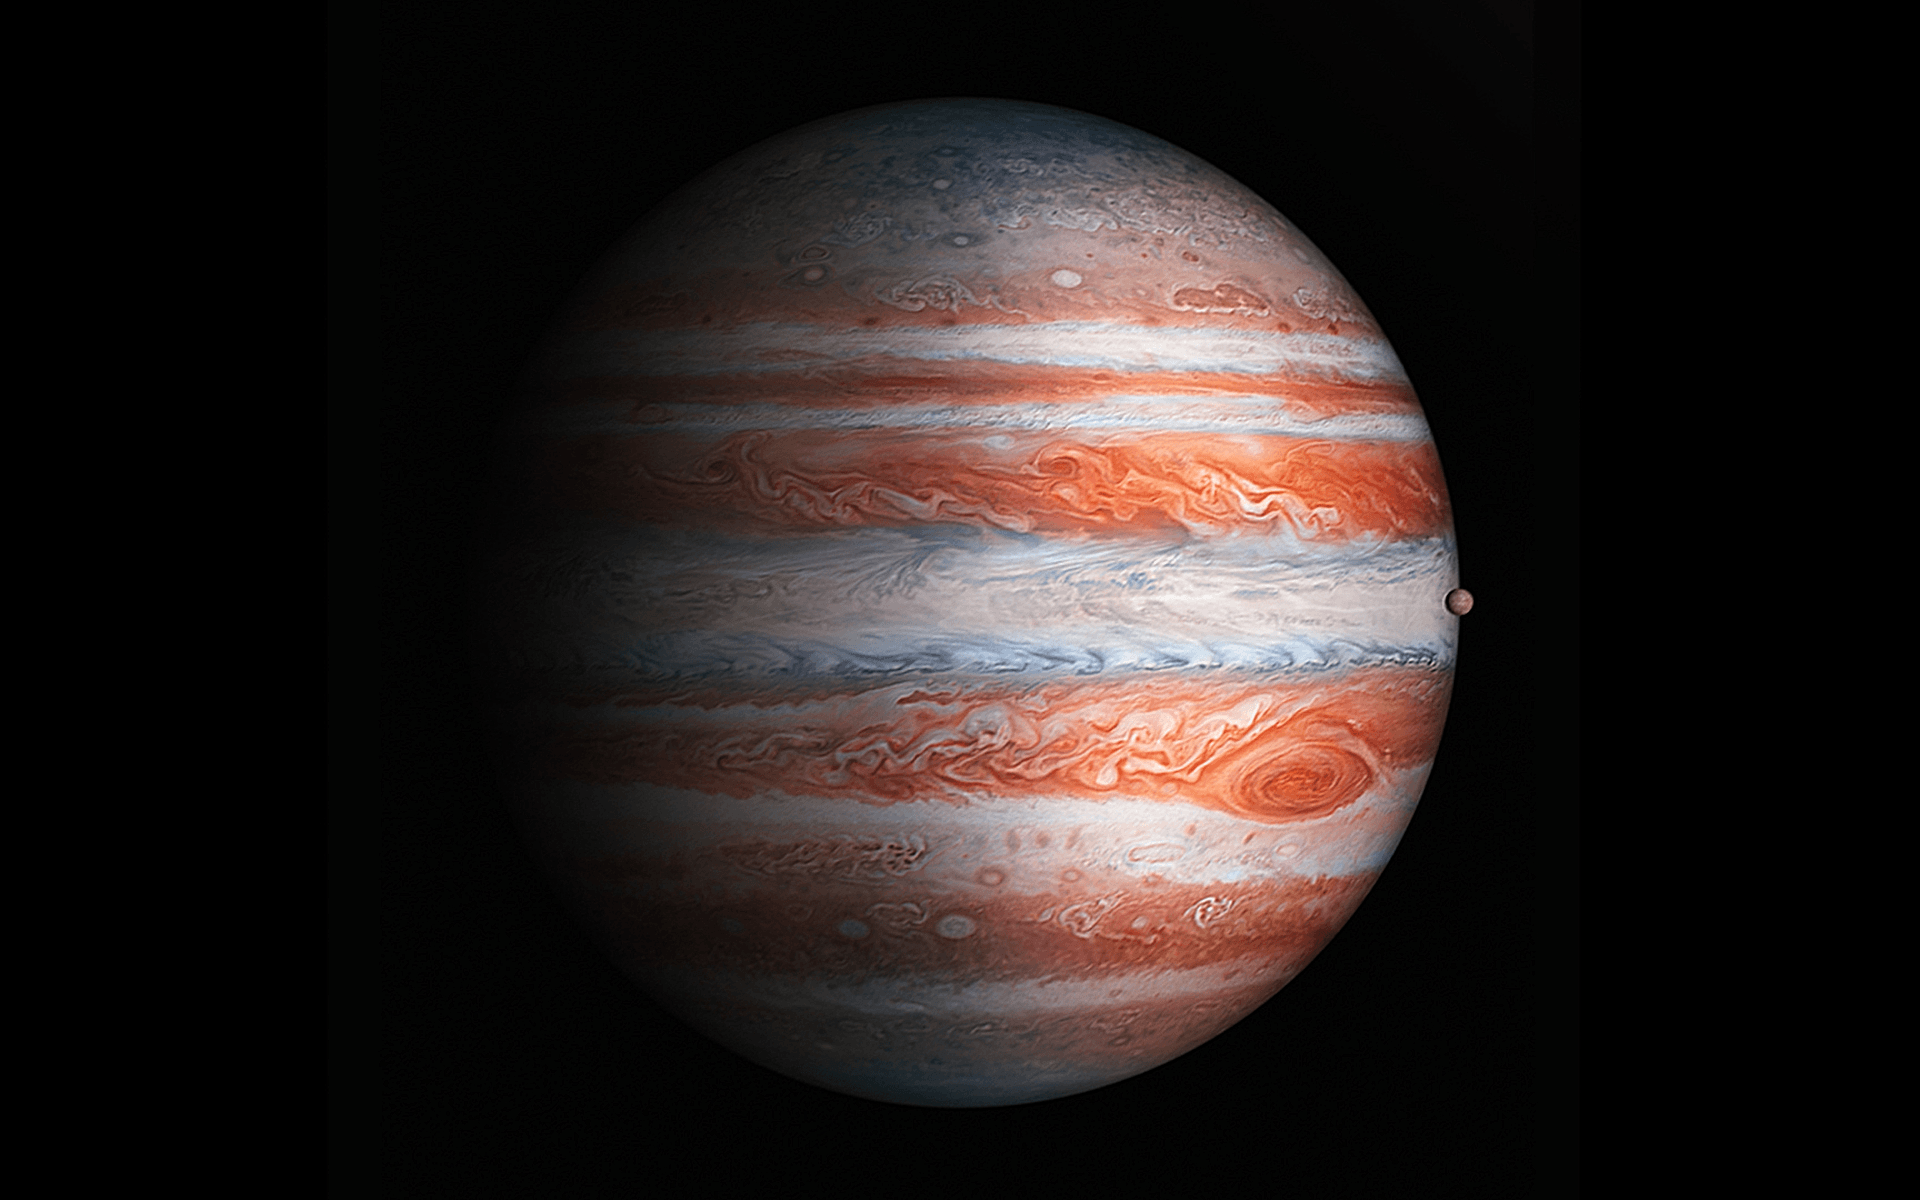 Jupiter HD Wallpapers, Desktop Image